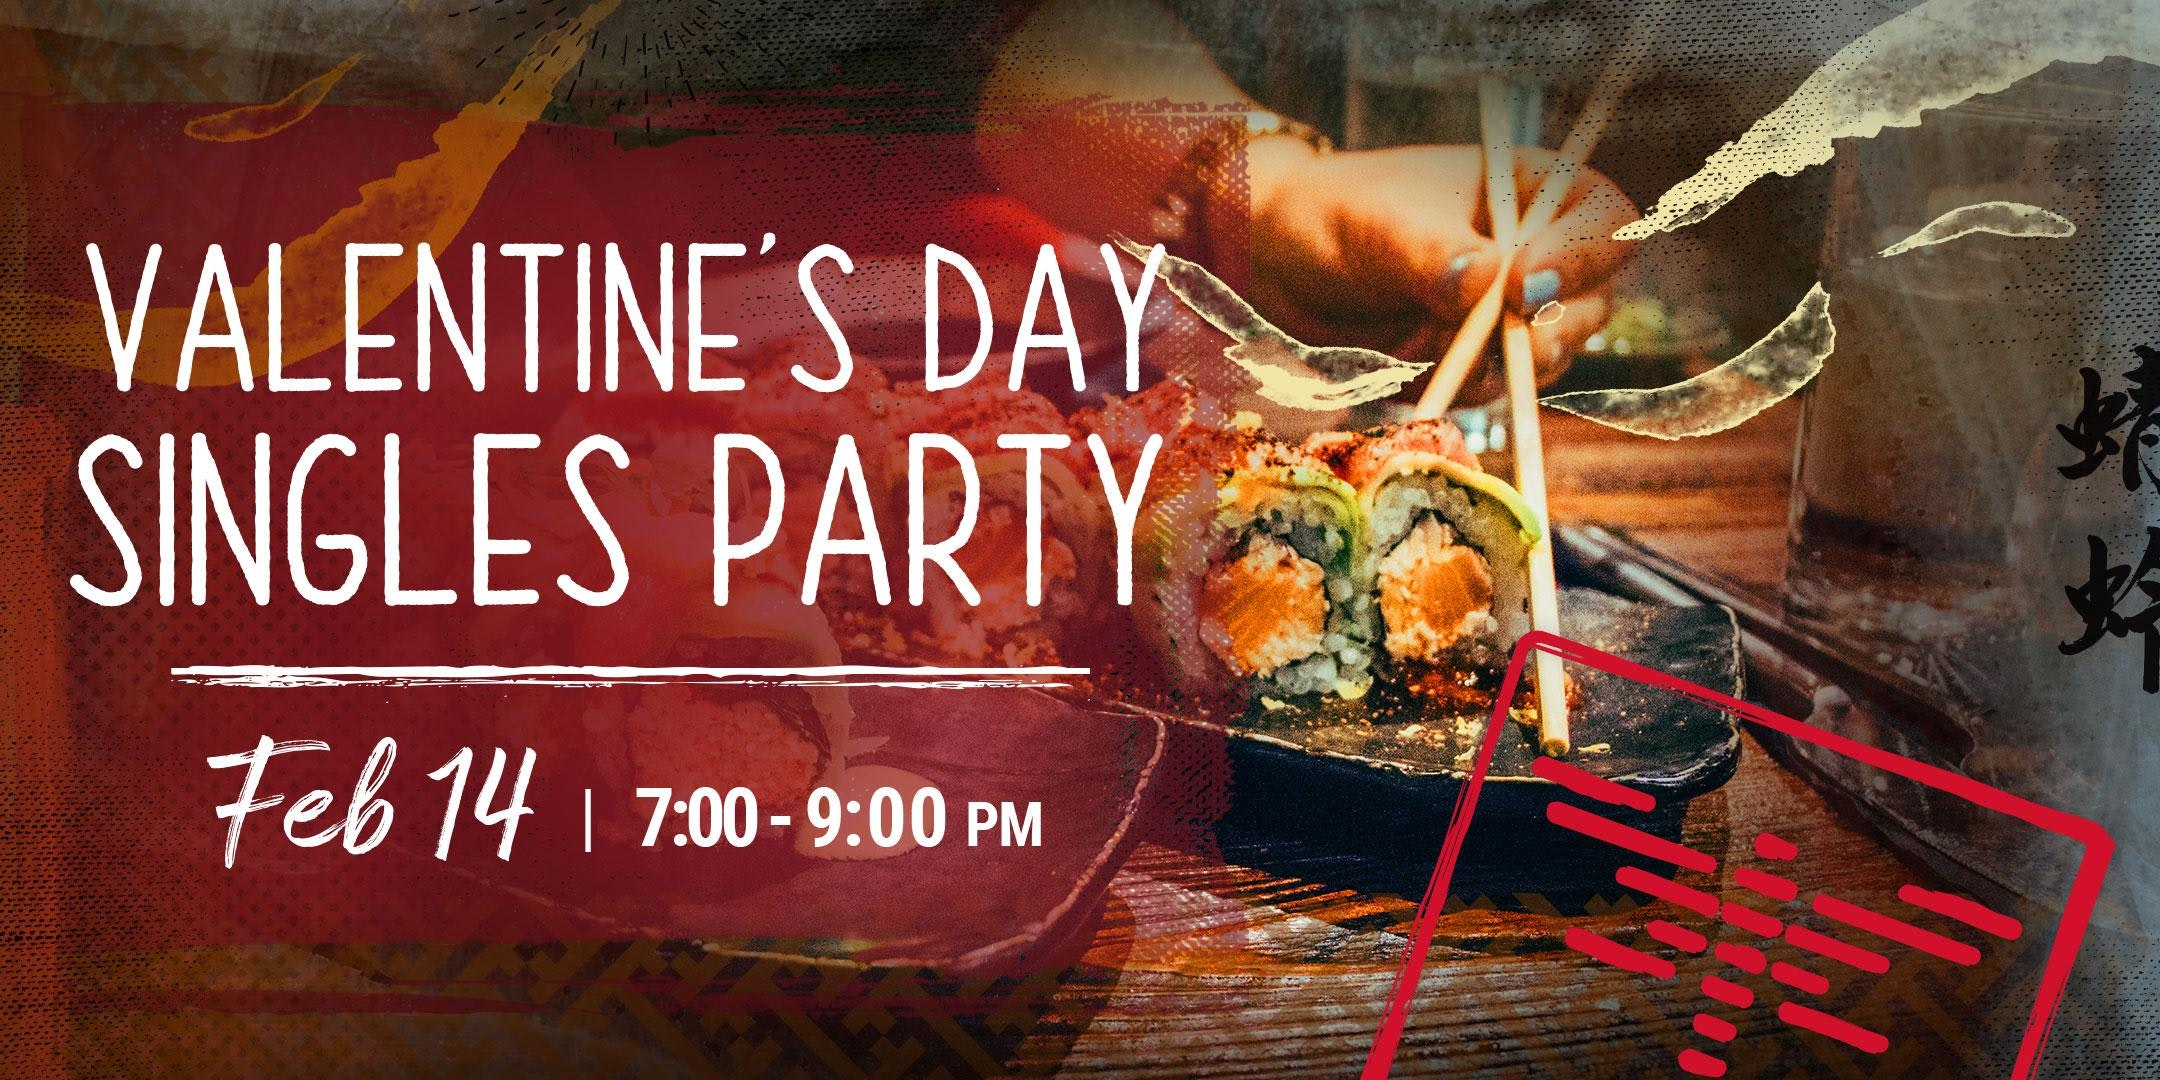 Dragonfly Doral 2018 Valentine's Day Specials - Singles Party Promo